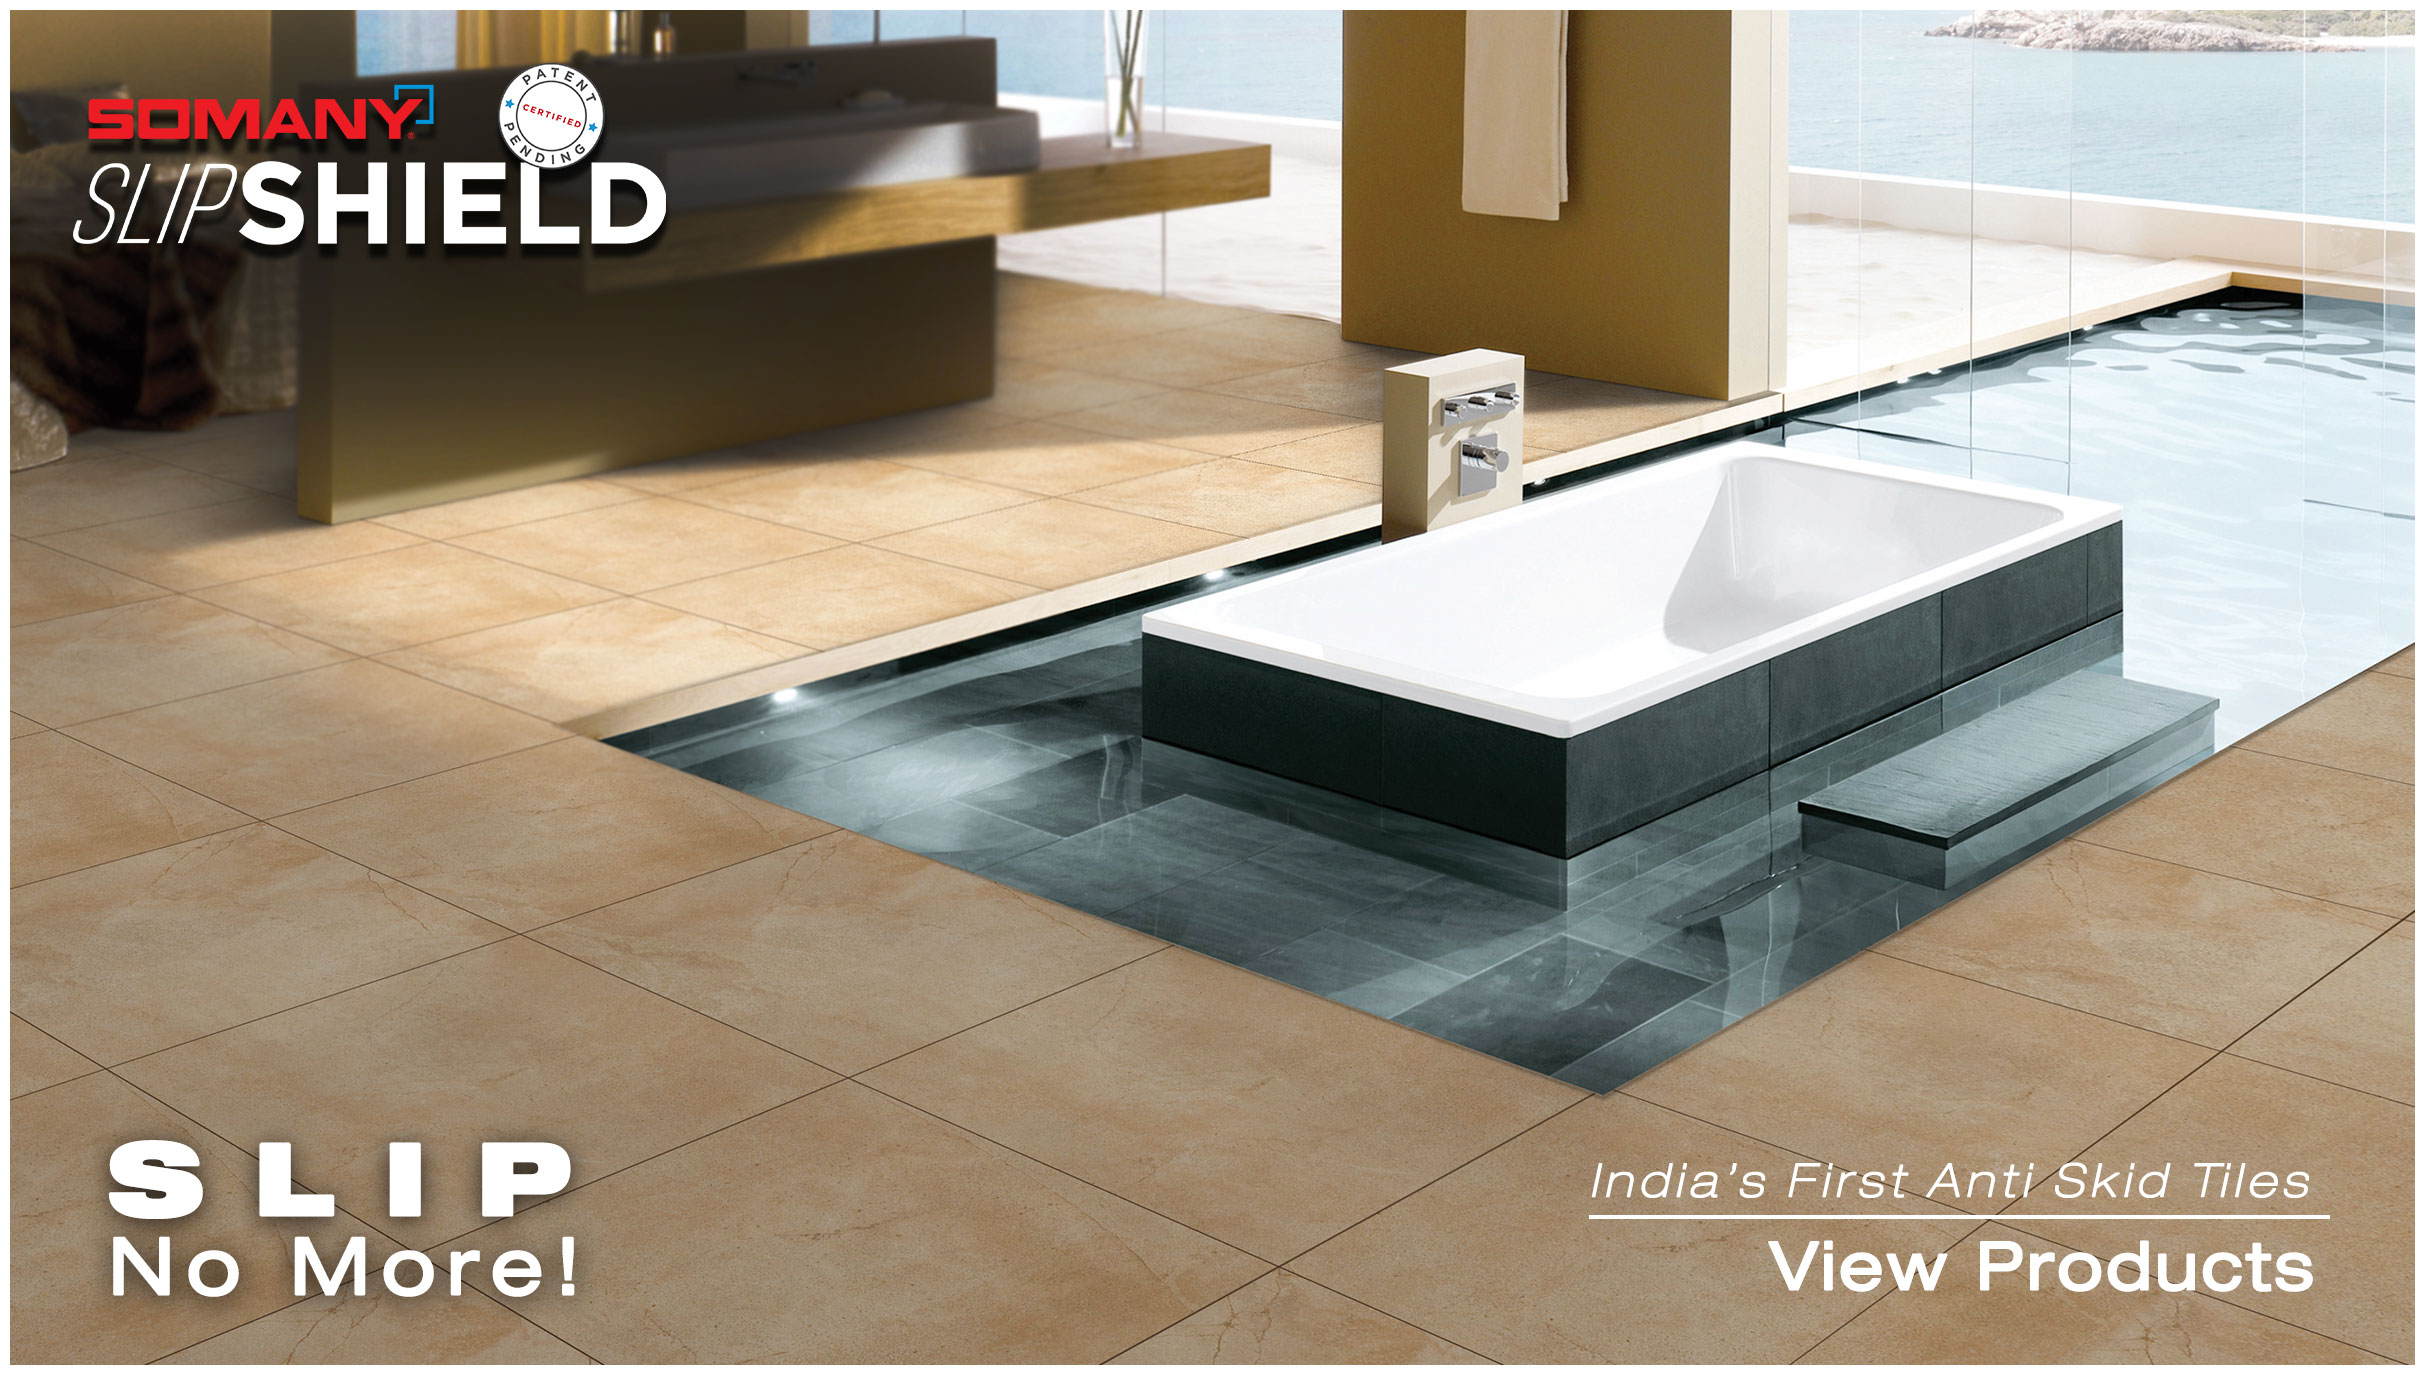 Somany Bathroom Tiles Biggest Collection Of Wall Tiles And Floor Tiles In India